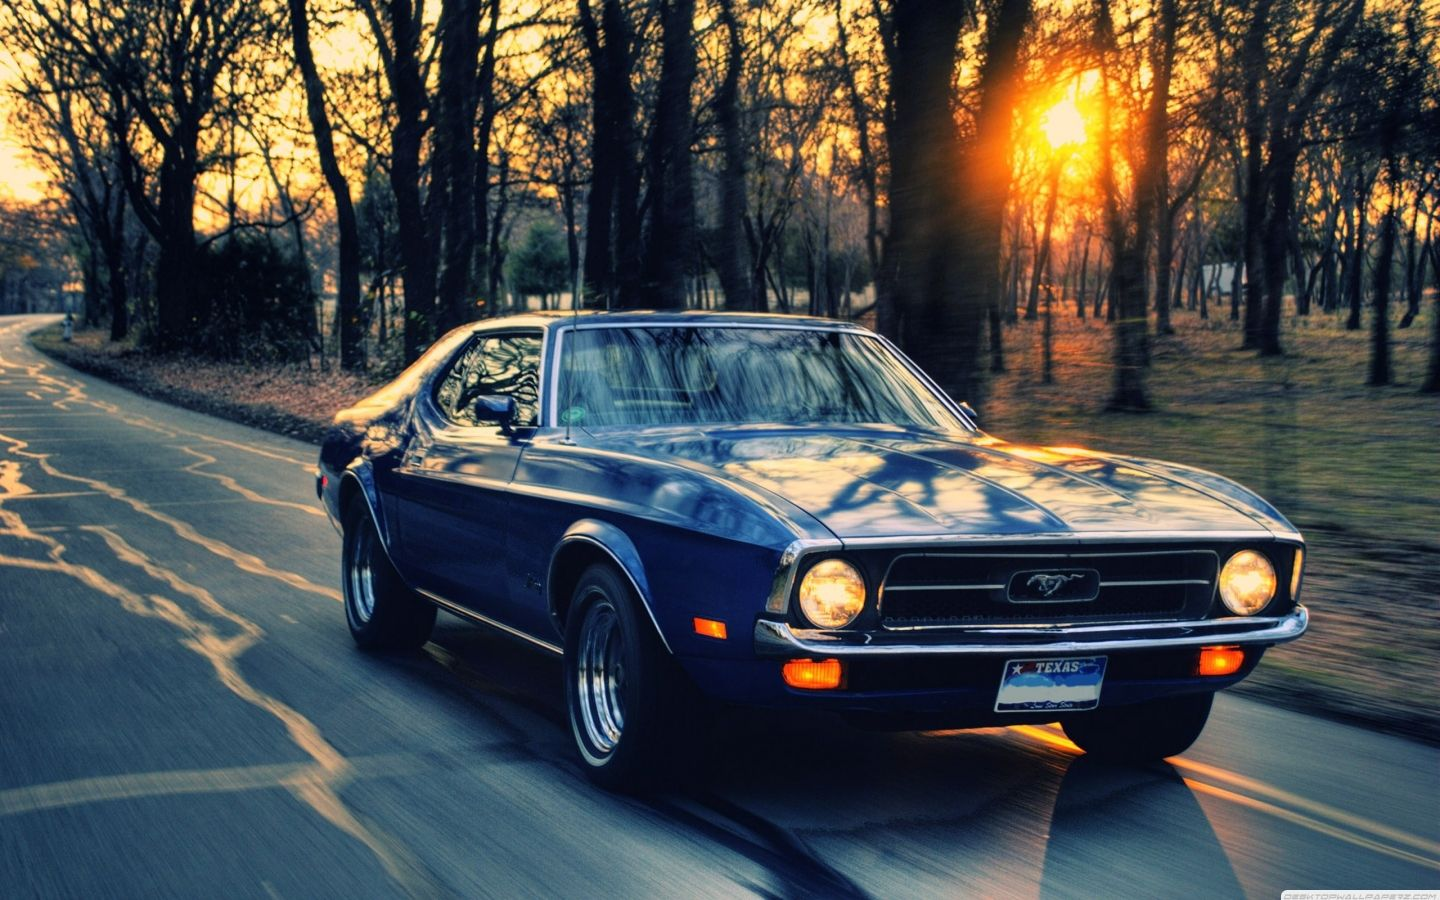 Ford Mustang Love It Want It Classic Cars Muscle Car Wallpapers Muscle Cars Mustang